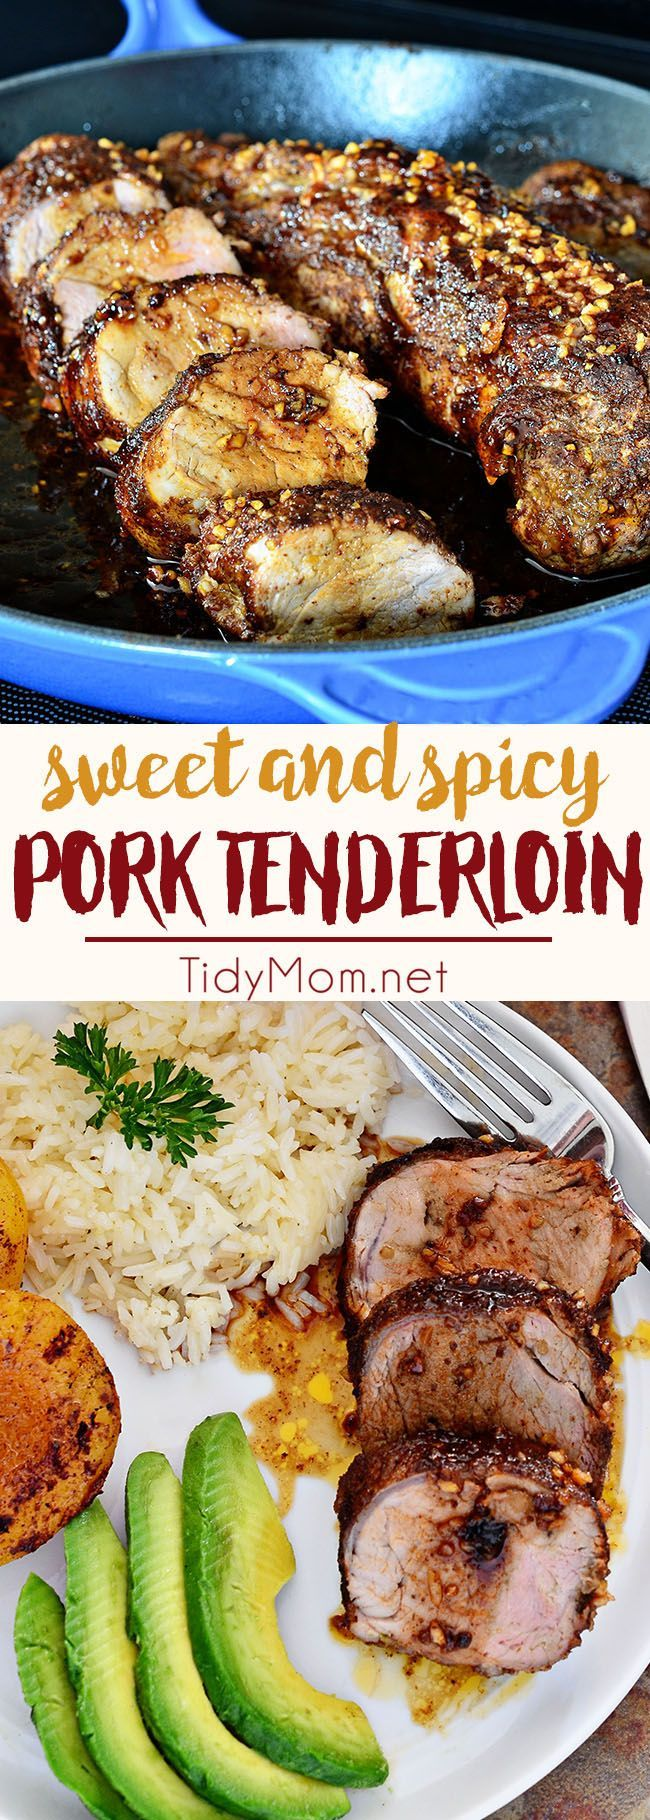 Your taste buds will be tantilized with each bite of this Sweet and Spicy Glazed Pork Tenderloin. Juicy and flavorful, it's a little sweet and a little spicy and it's a breeze to whip up. This pork tenderloin is ready for the table in 30 minutes. Get the full recipe at TidyMom.net